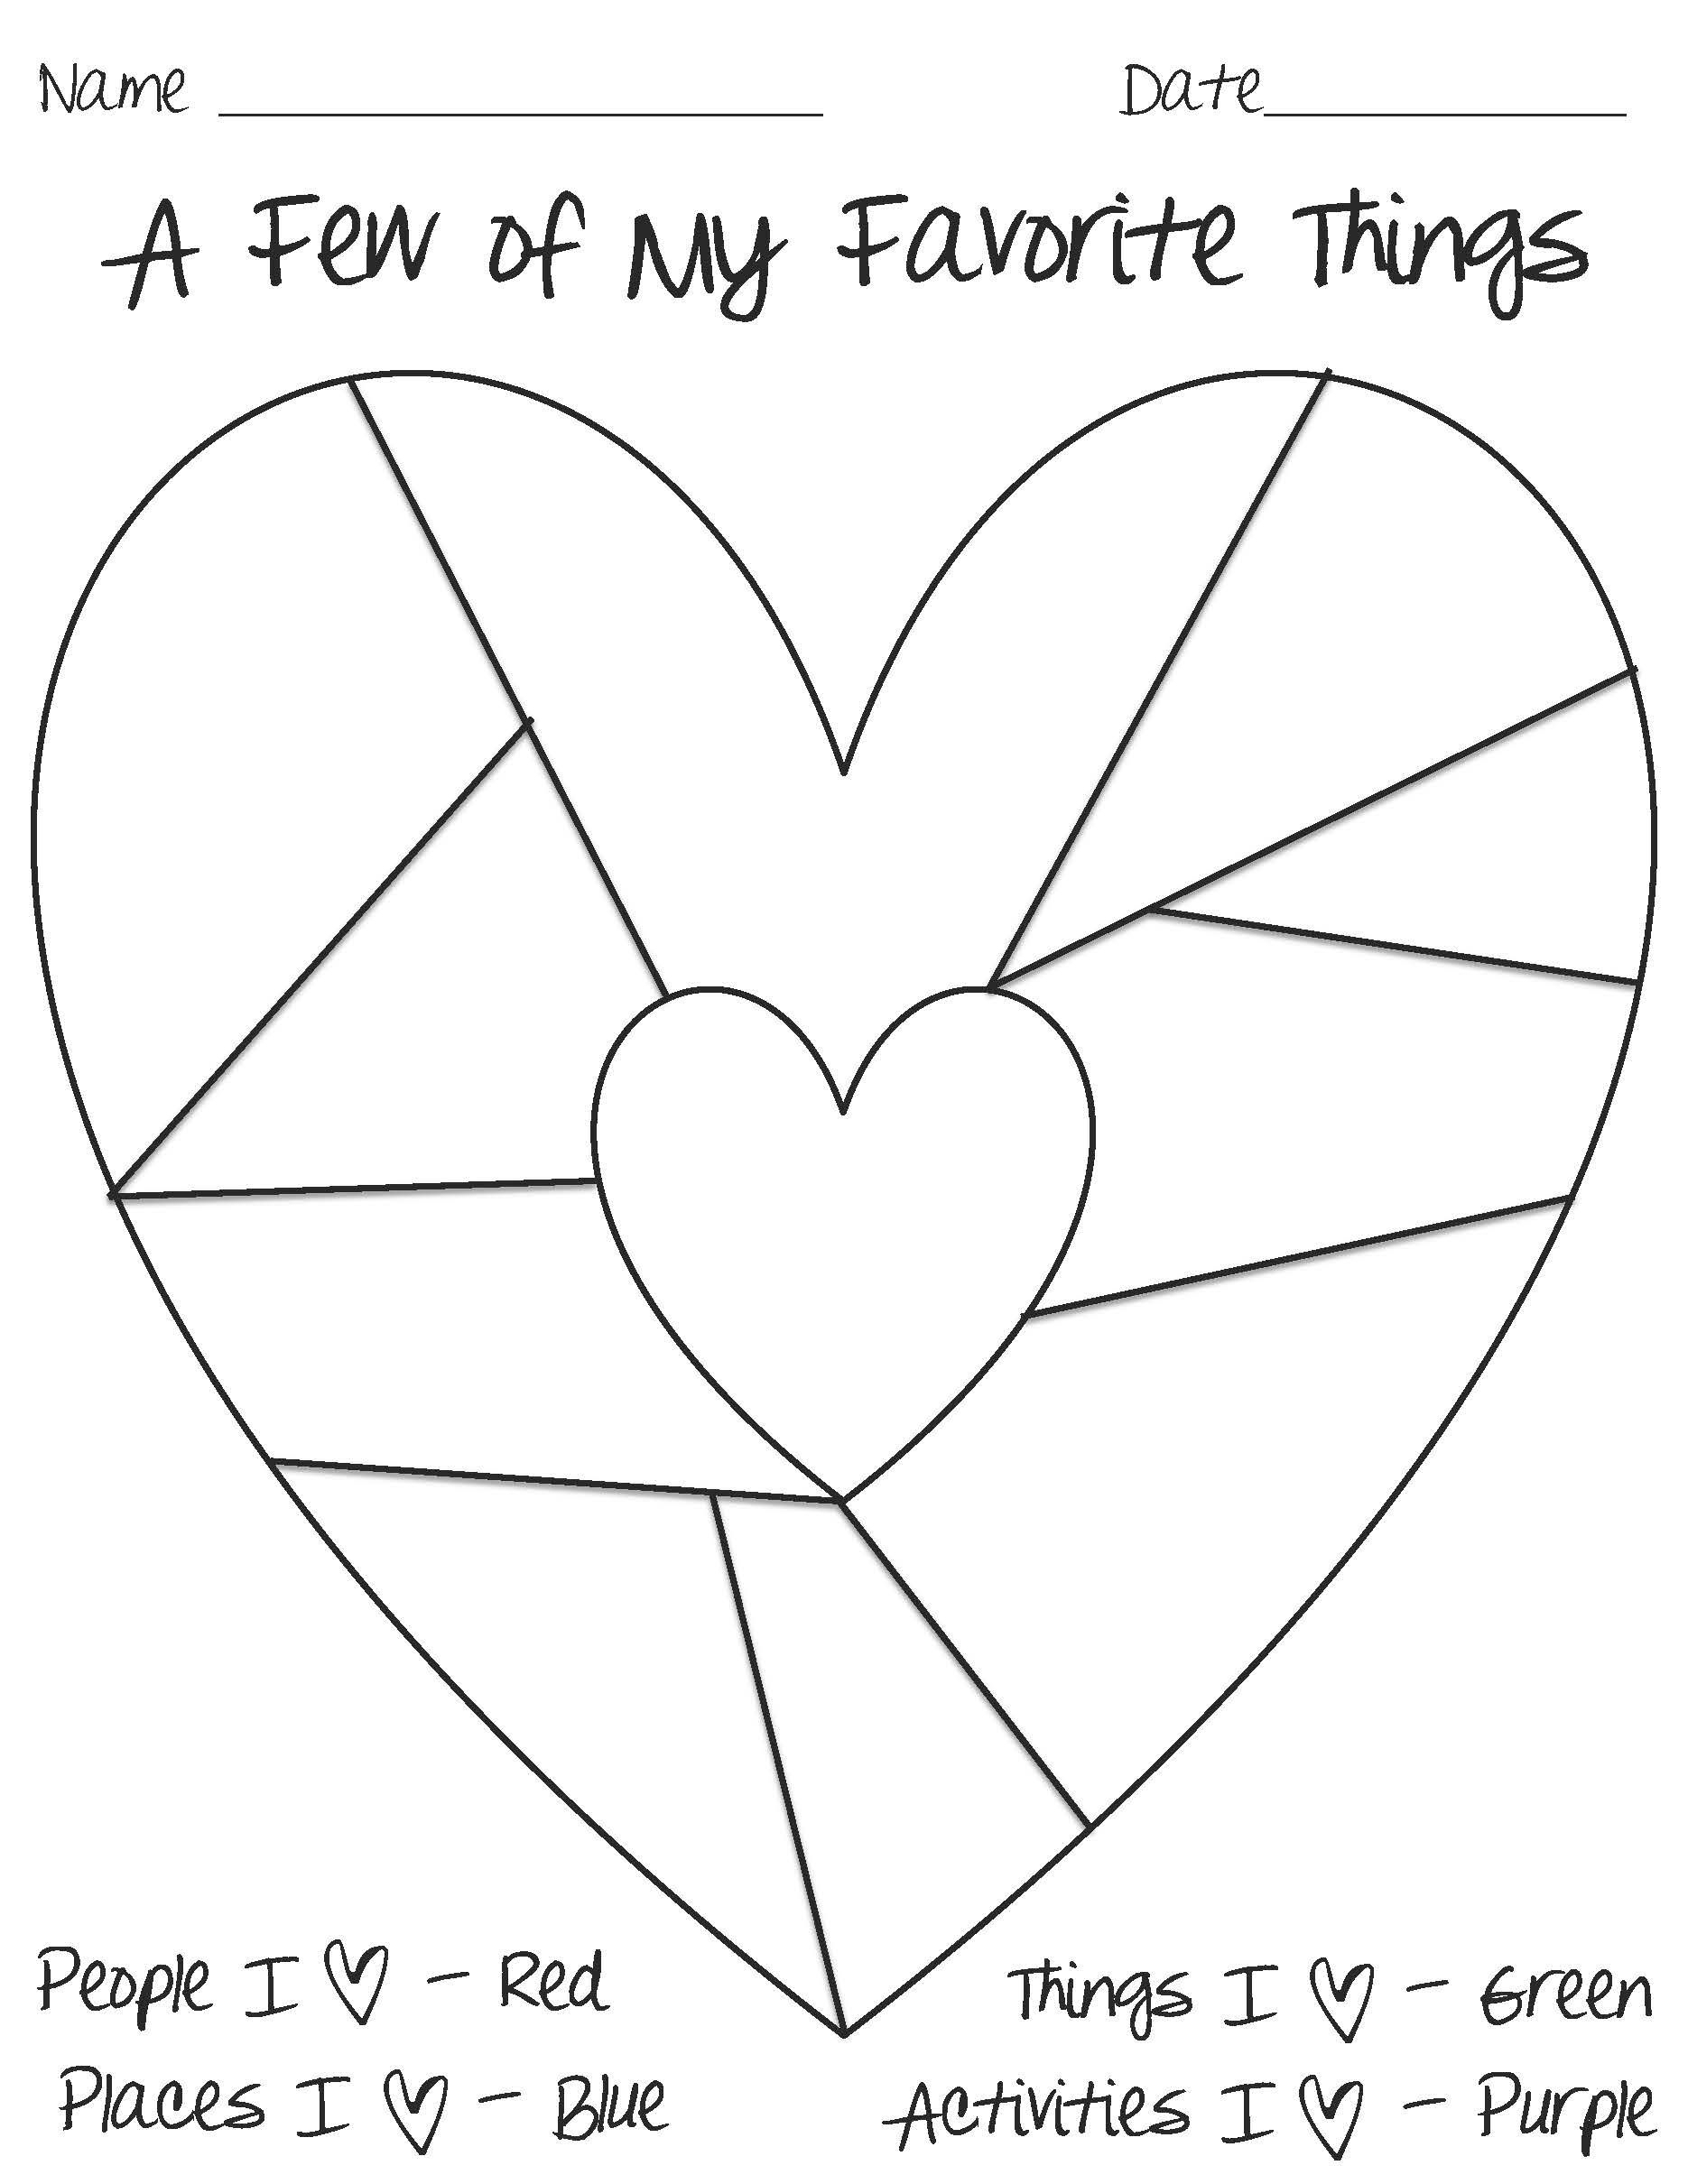 Heart Map Template | Hhcm Programming | 3Rd Grade Writing intended for A Few Of My Favorite Things Heart Map